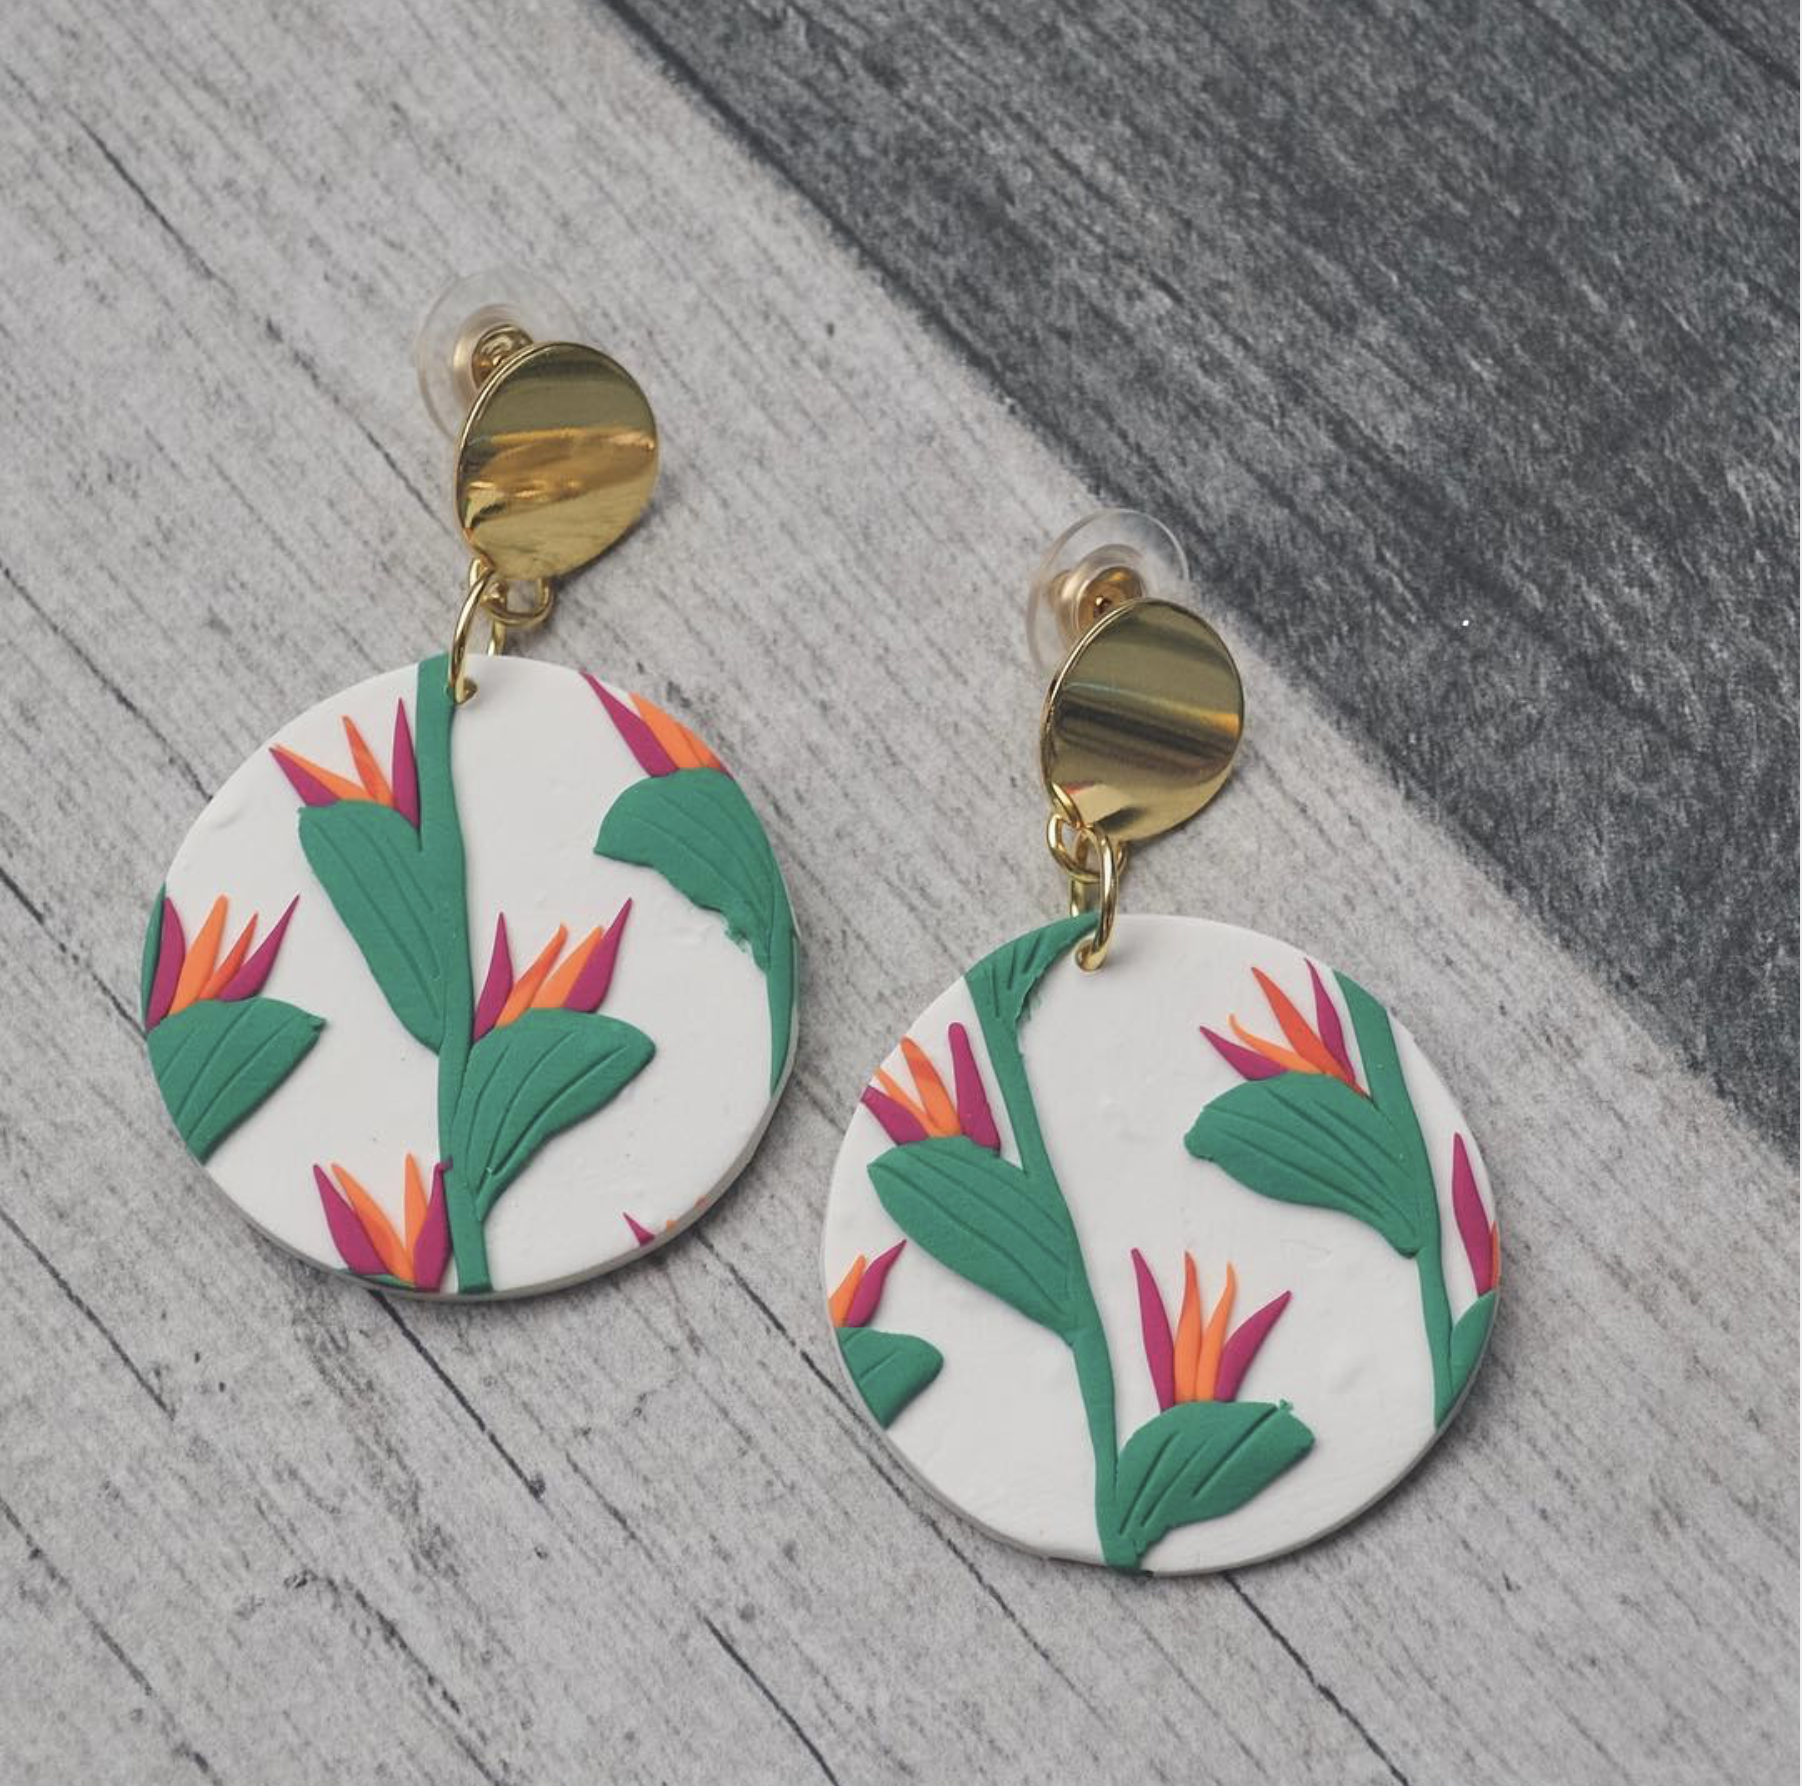 Bird Of Paradise Clay Earrings In 2020 Polymer Clay Embroidery Clay Earrings Clay Bird